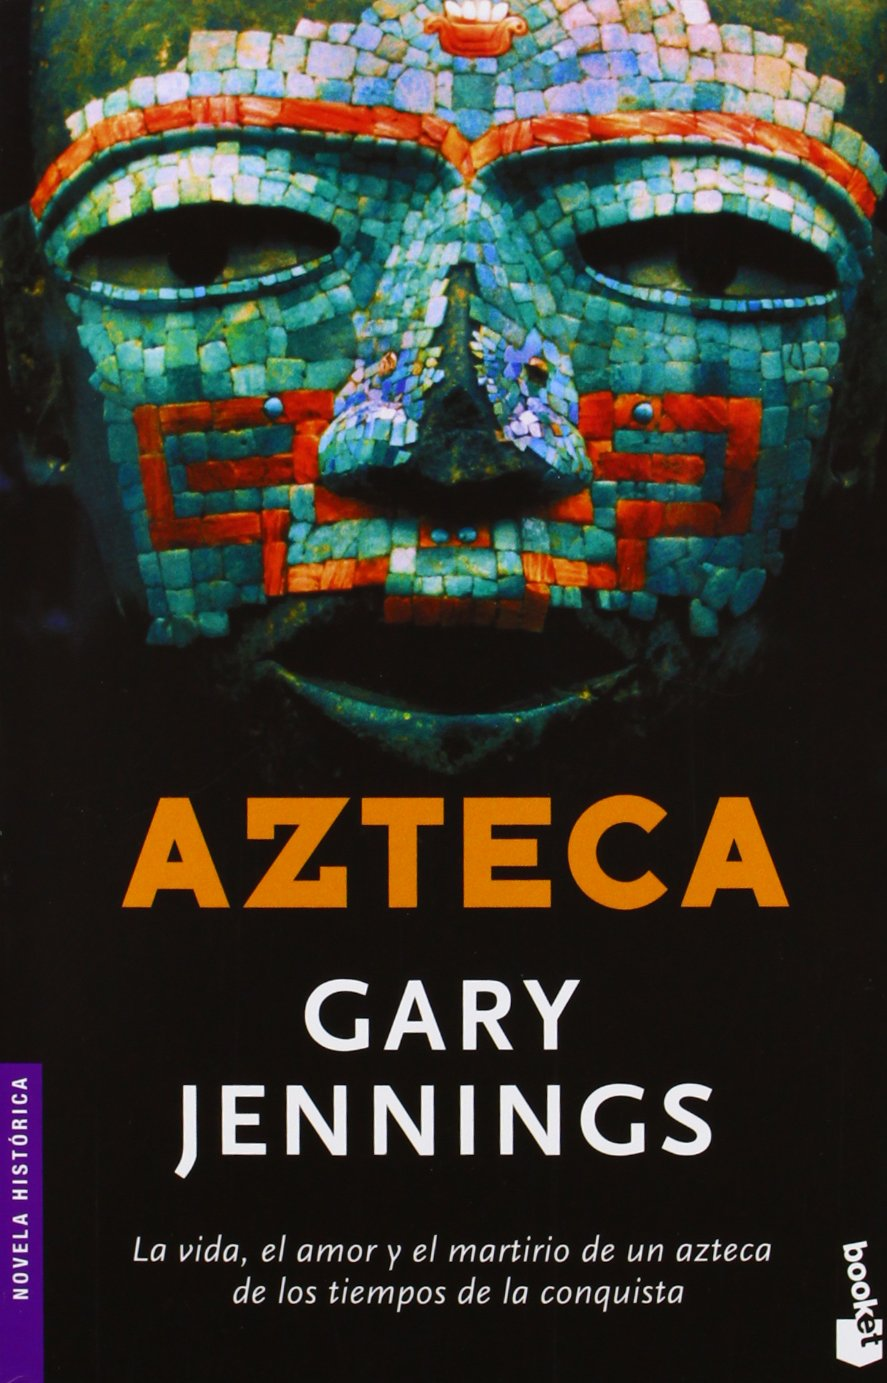 Azteca aztec novela historica spanish edition gary jennings azteca aztec novela historica spanish edition gary jennings 9788408065814 amazon books fandeluxe Image collections